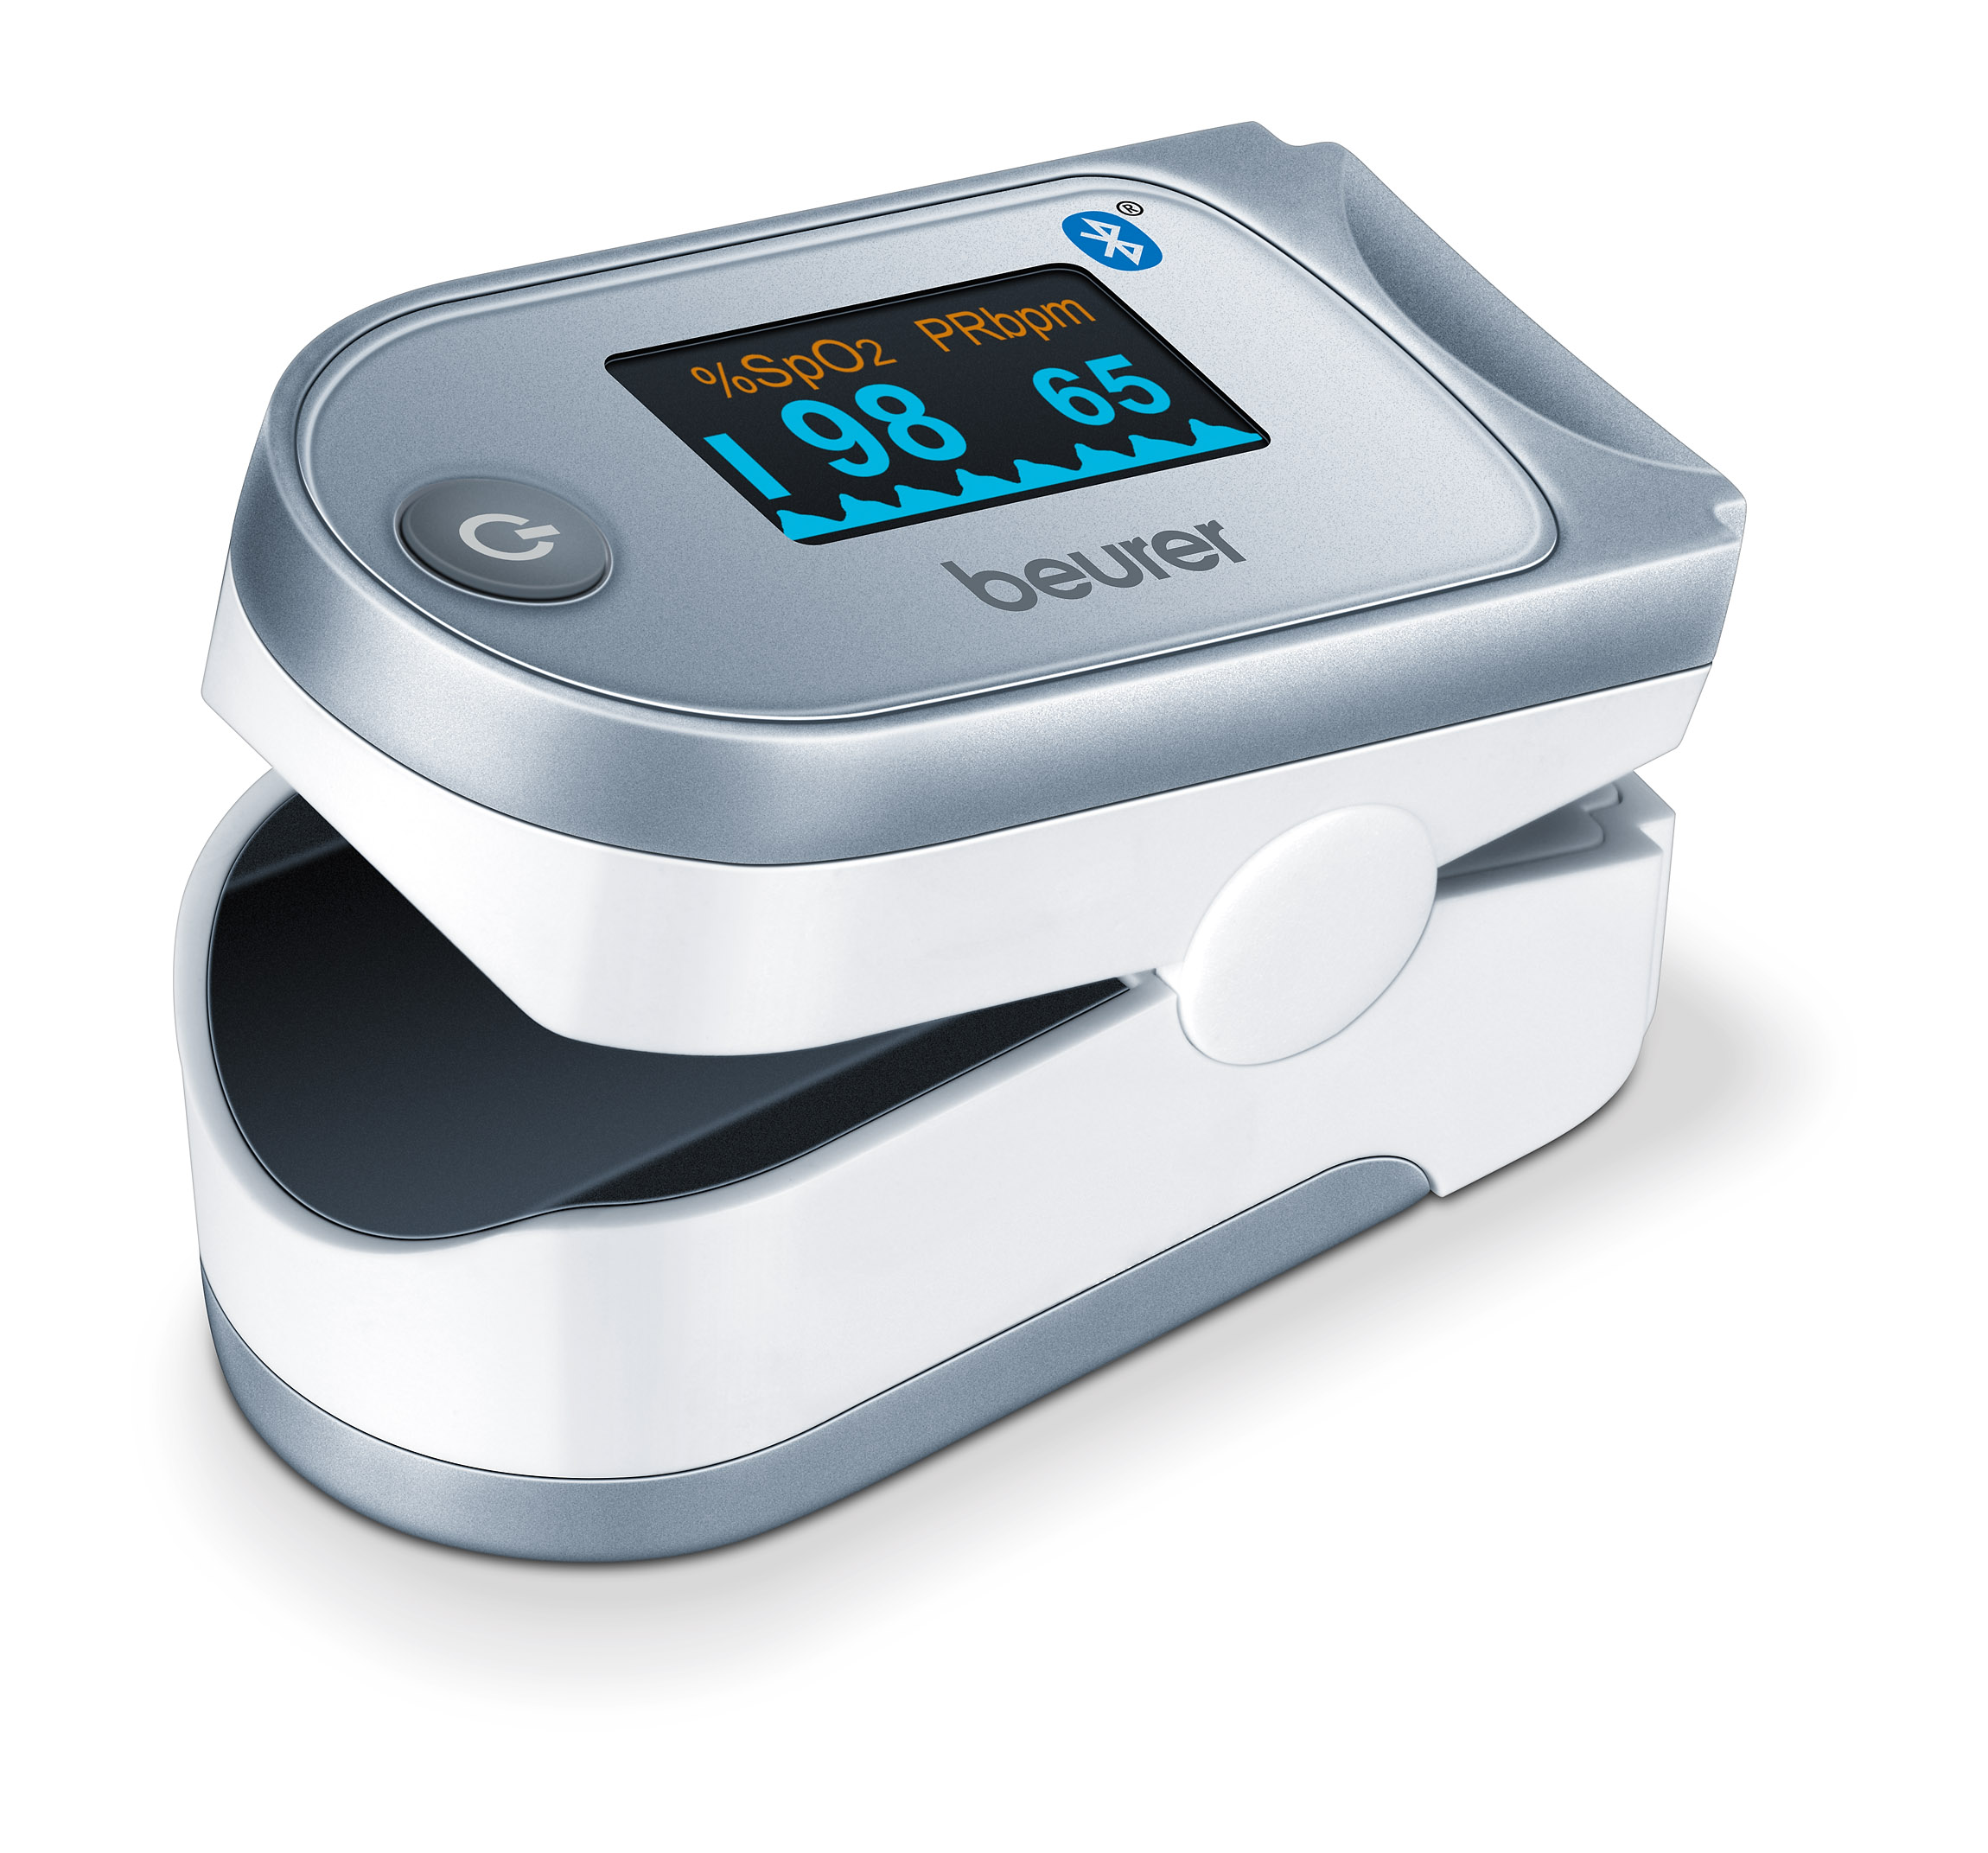 Pulse oximeter: Type PO 60